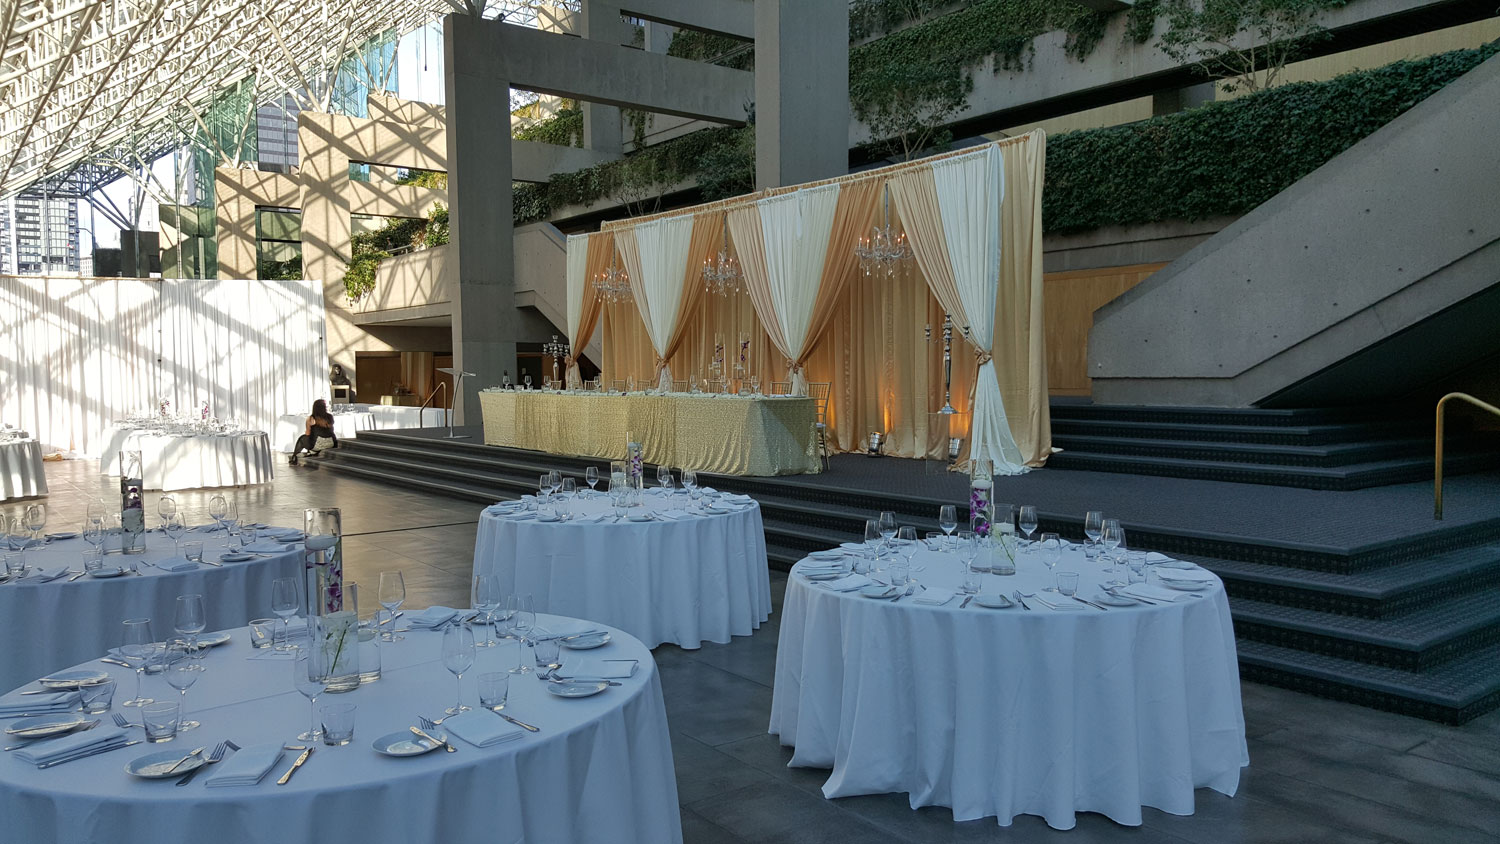 Vancouver Law Courts courthouse - wedding decor decorations backdrop - wedding chandeliers